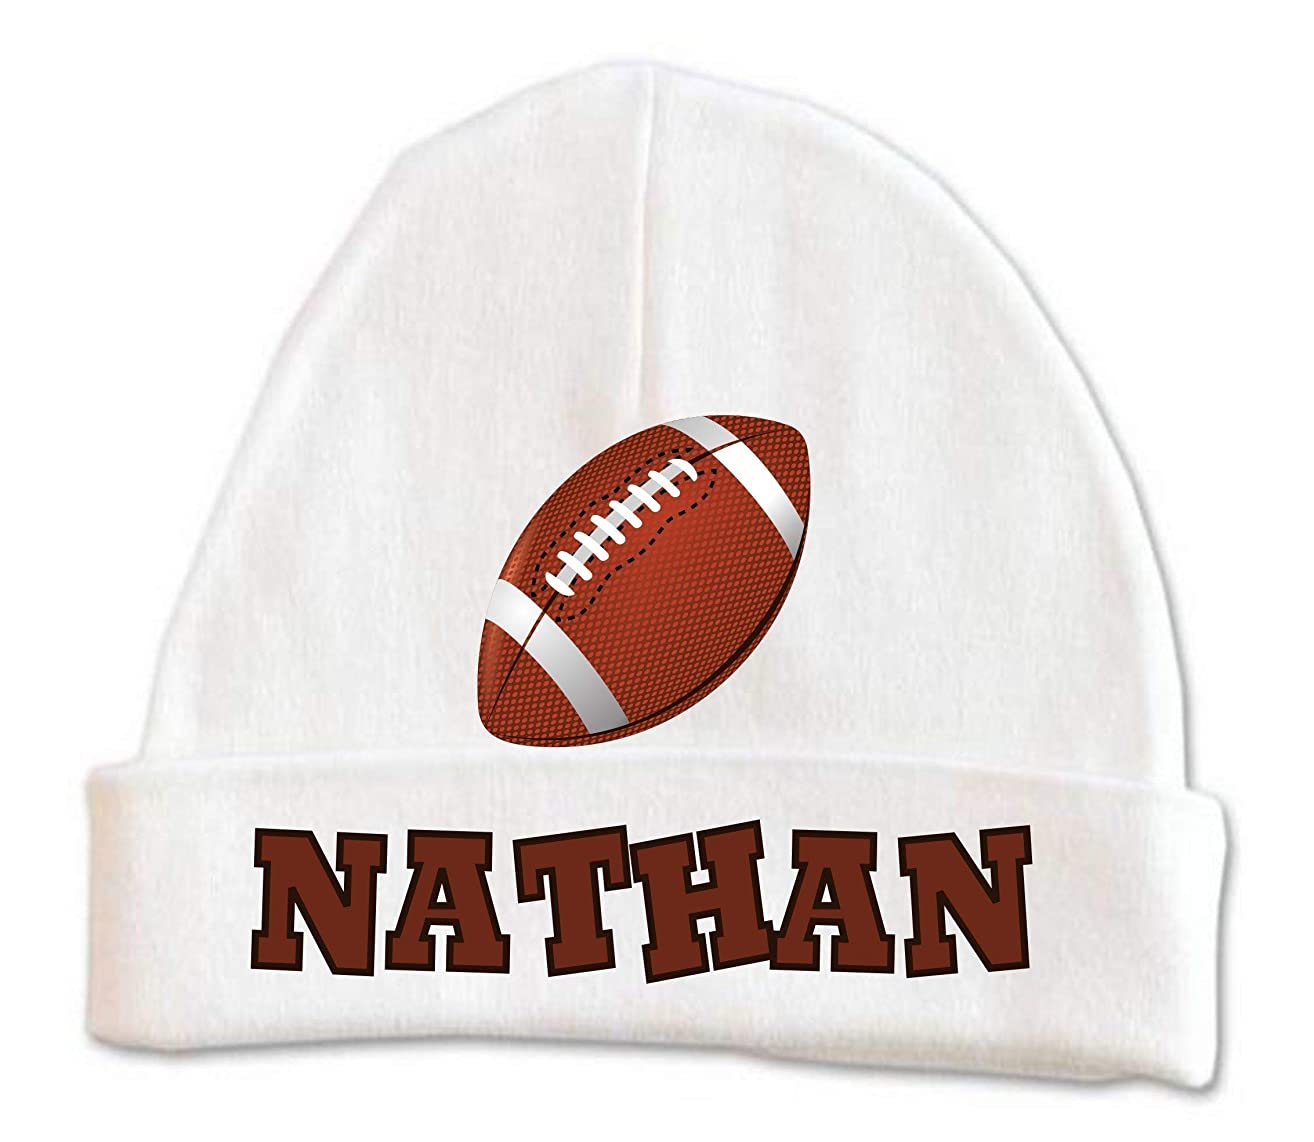 FootBall Baby Beanie Hat Boys Winter Warm Custom Infant Newborn Personalized 0-6 months